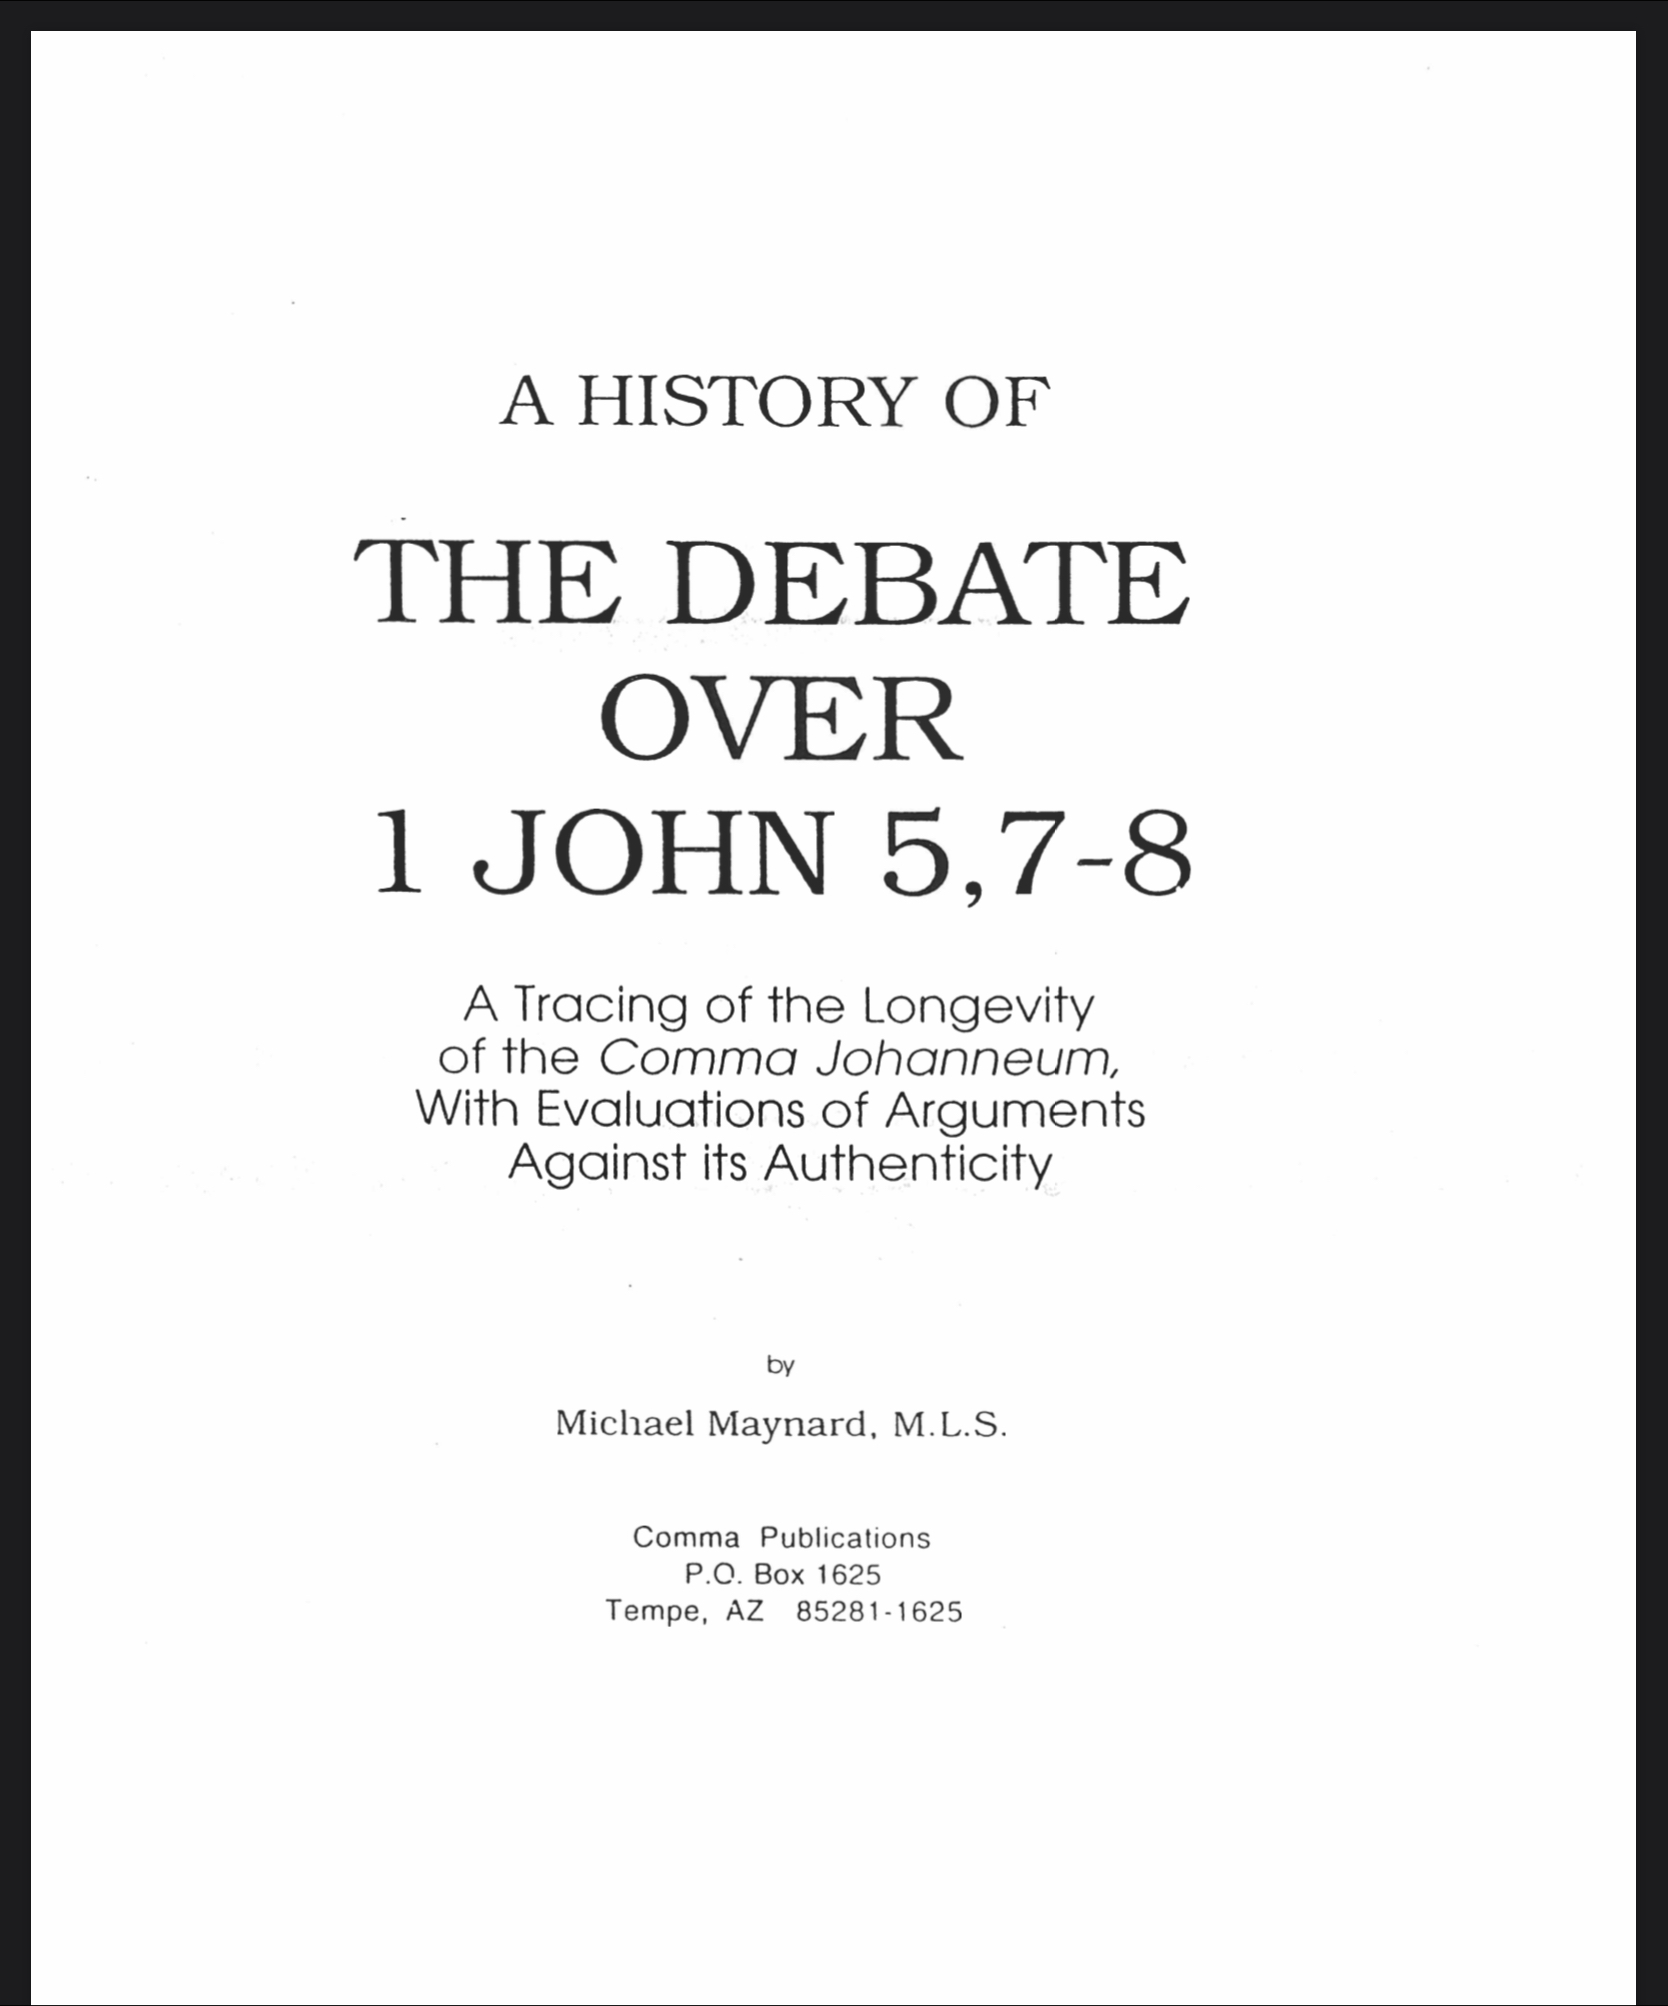 History Over the Debate of 1 John 5:7,8